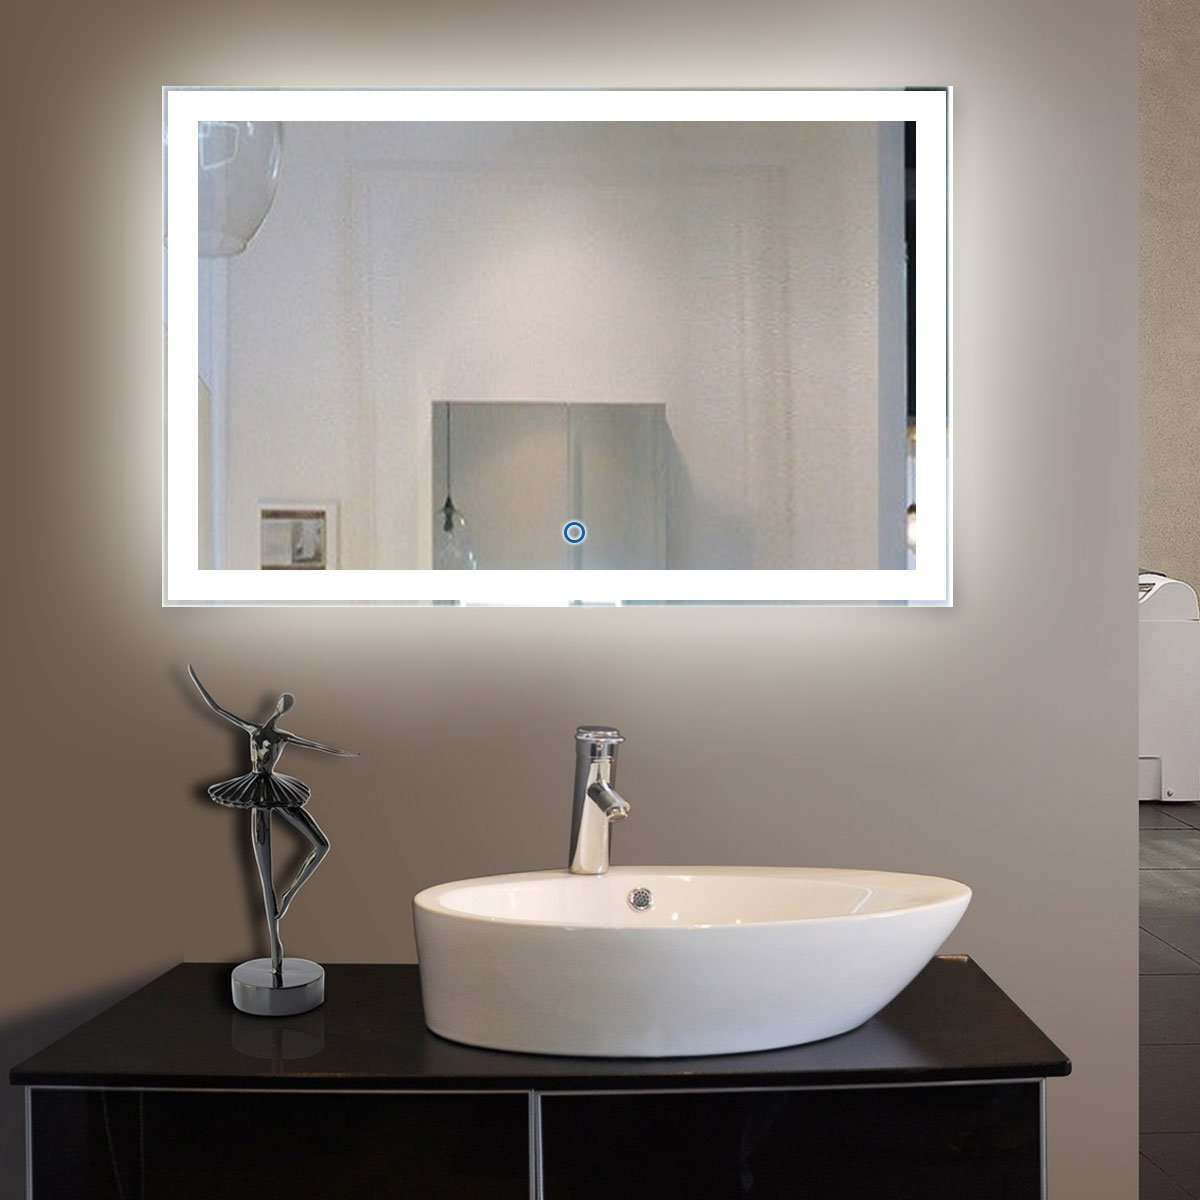 55 x 36 In Horizontal LED Bathroom Silvered Mirror with Touch Button (N031-C)